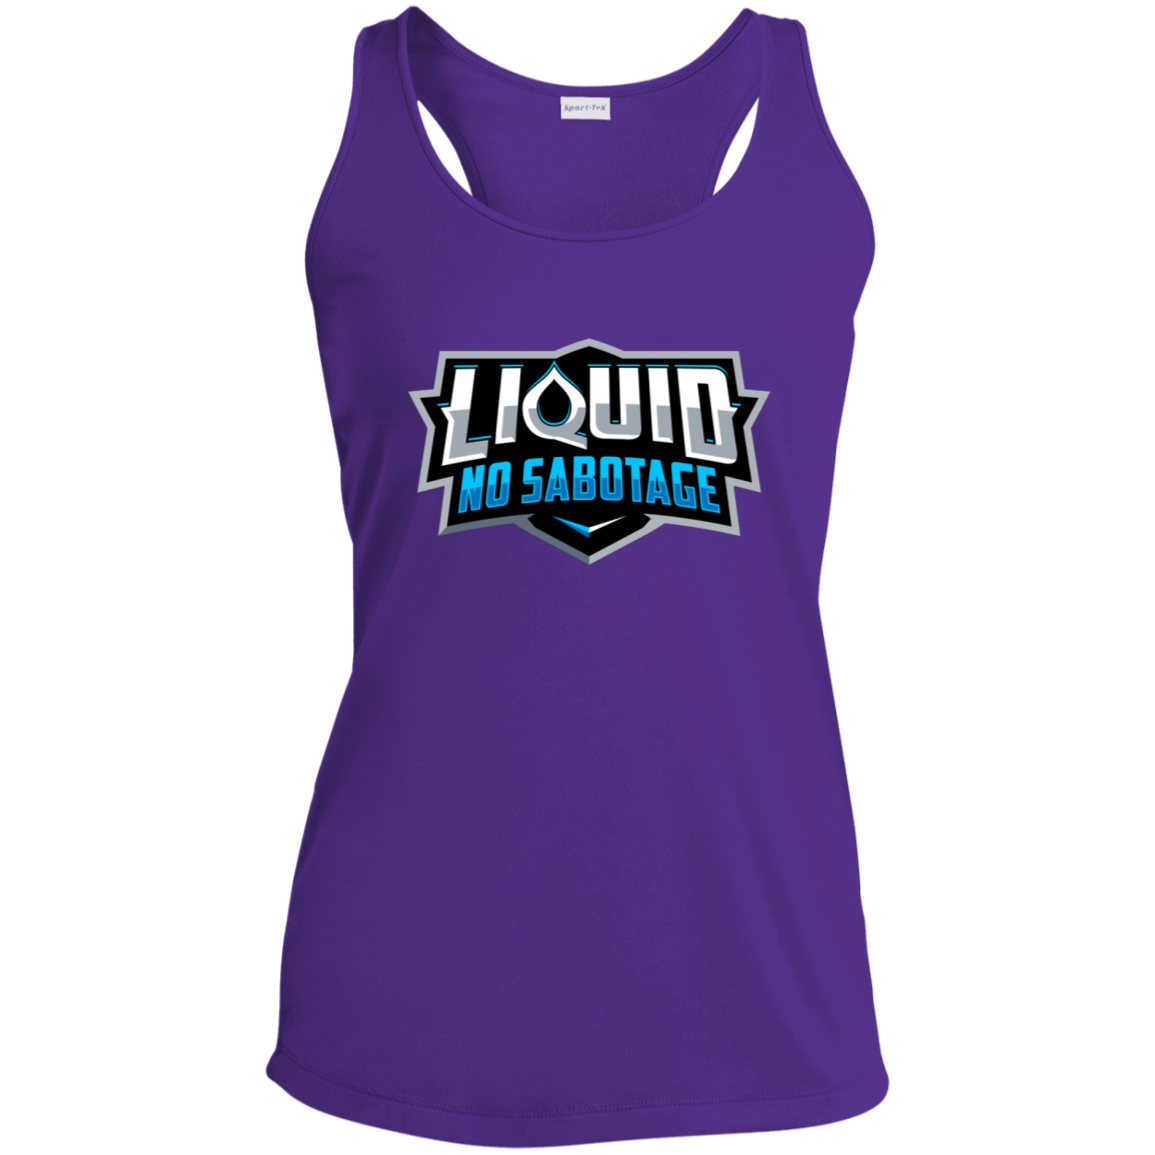 LST356 Ladies' Racerback Moisture Wicking Tank - Liquid Hydration Gear